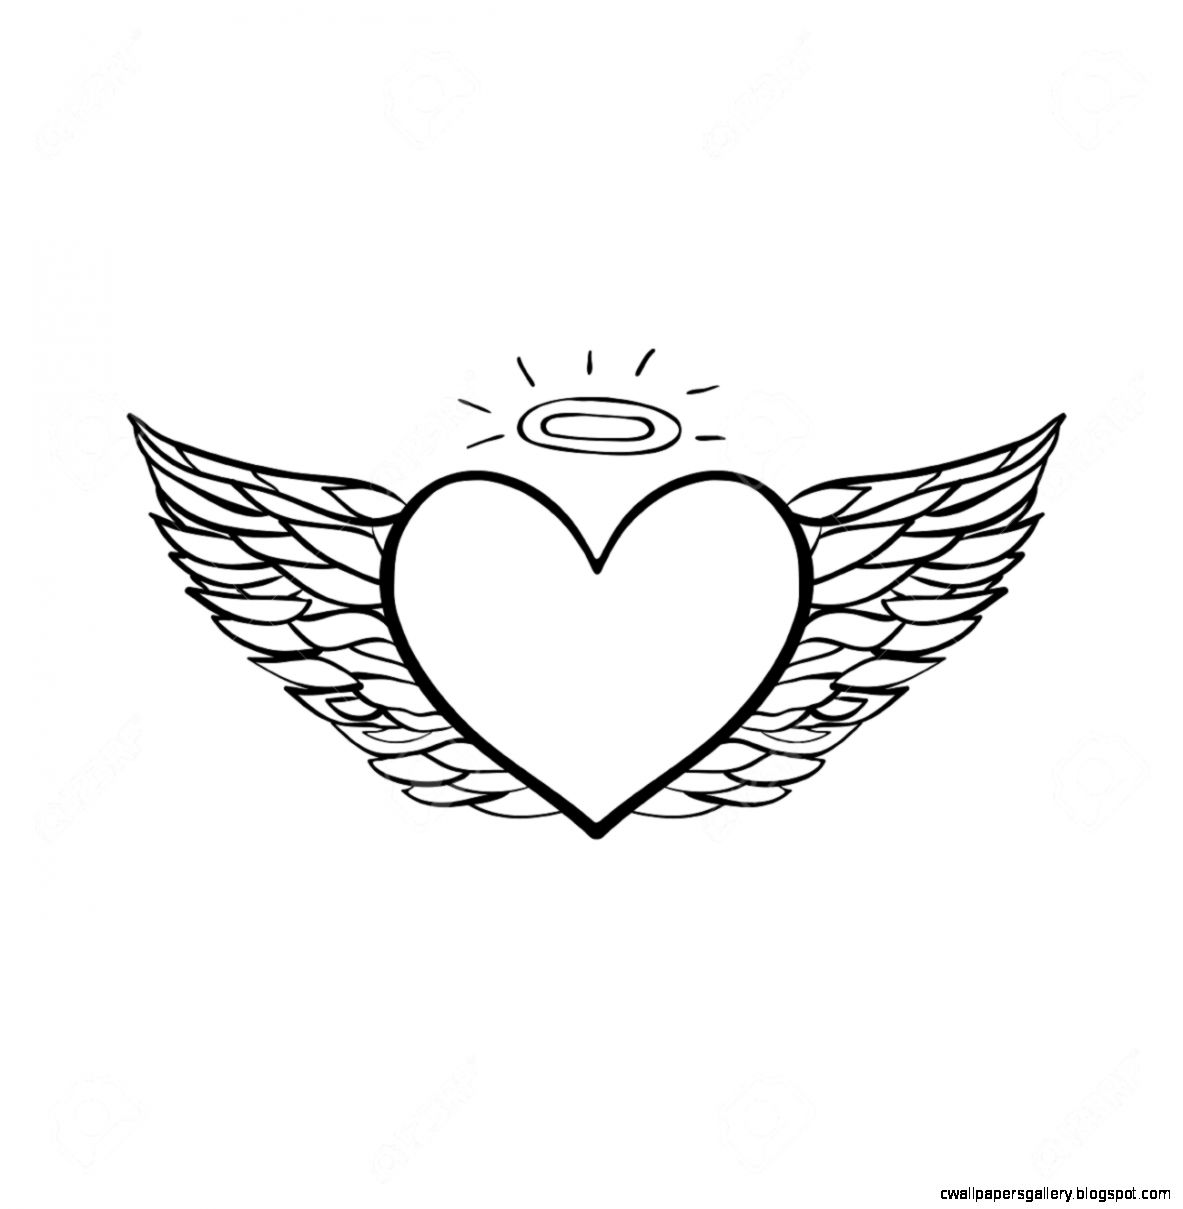 Vector Hand Drawn Flying Angel Heart Black Sketch On White